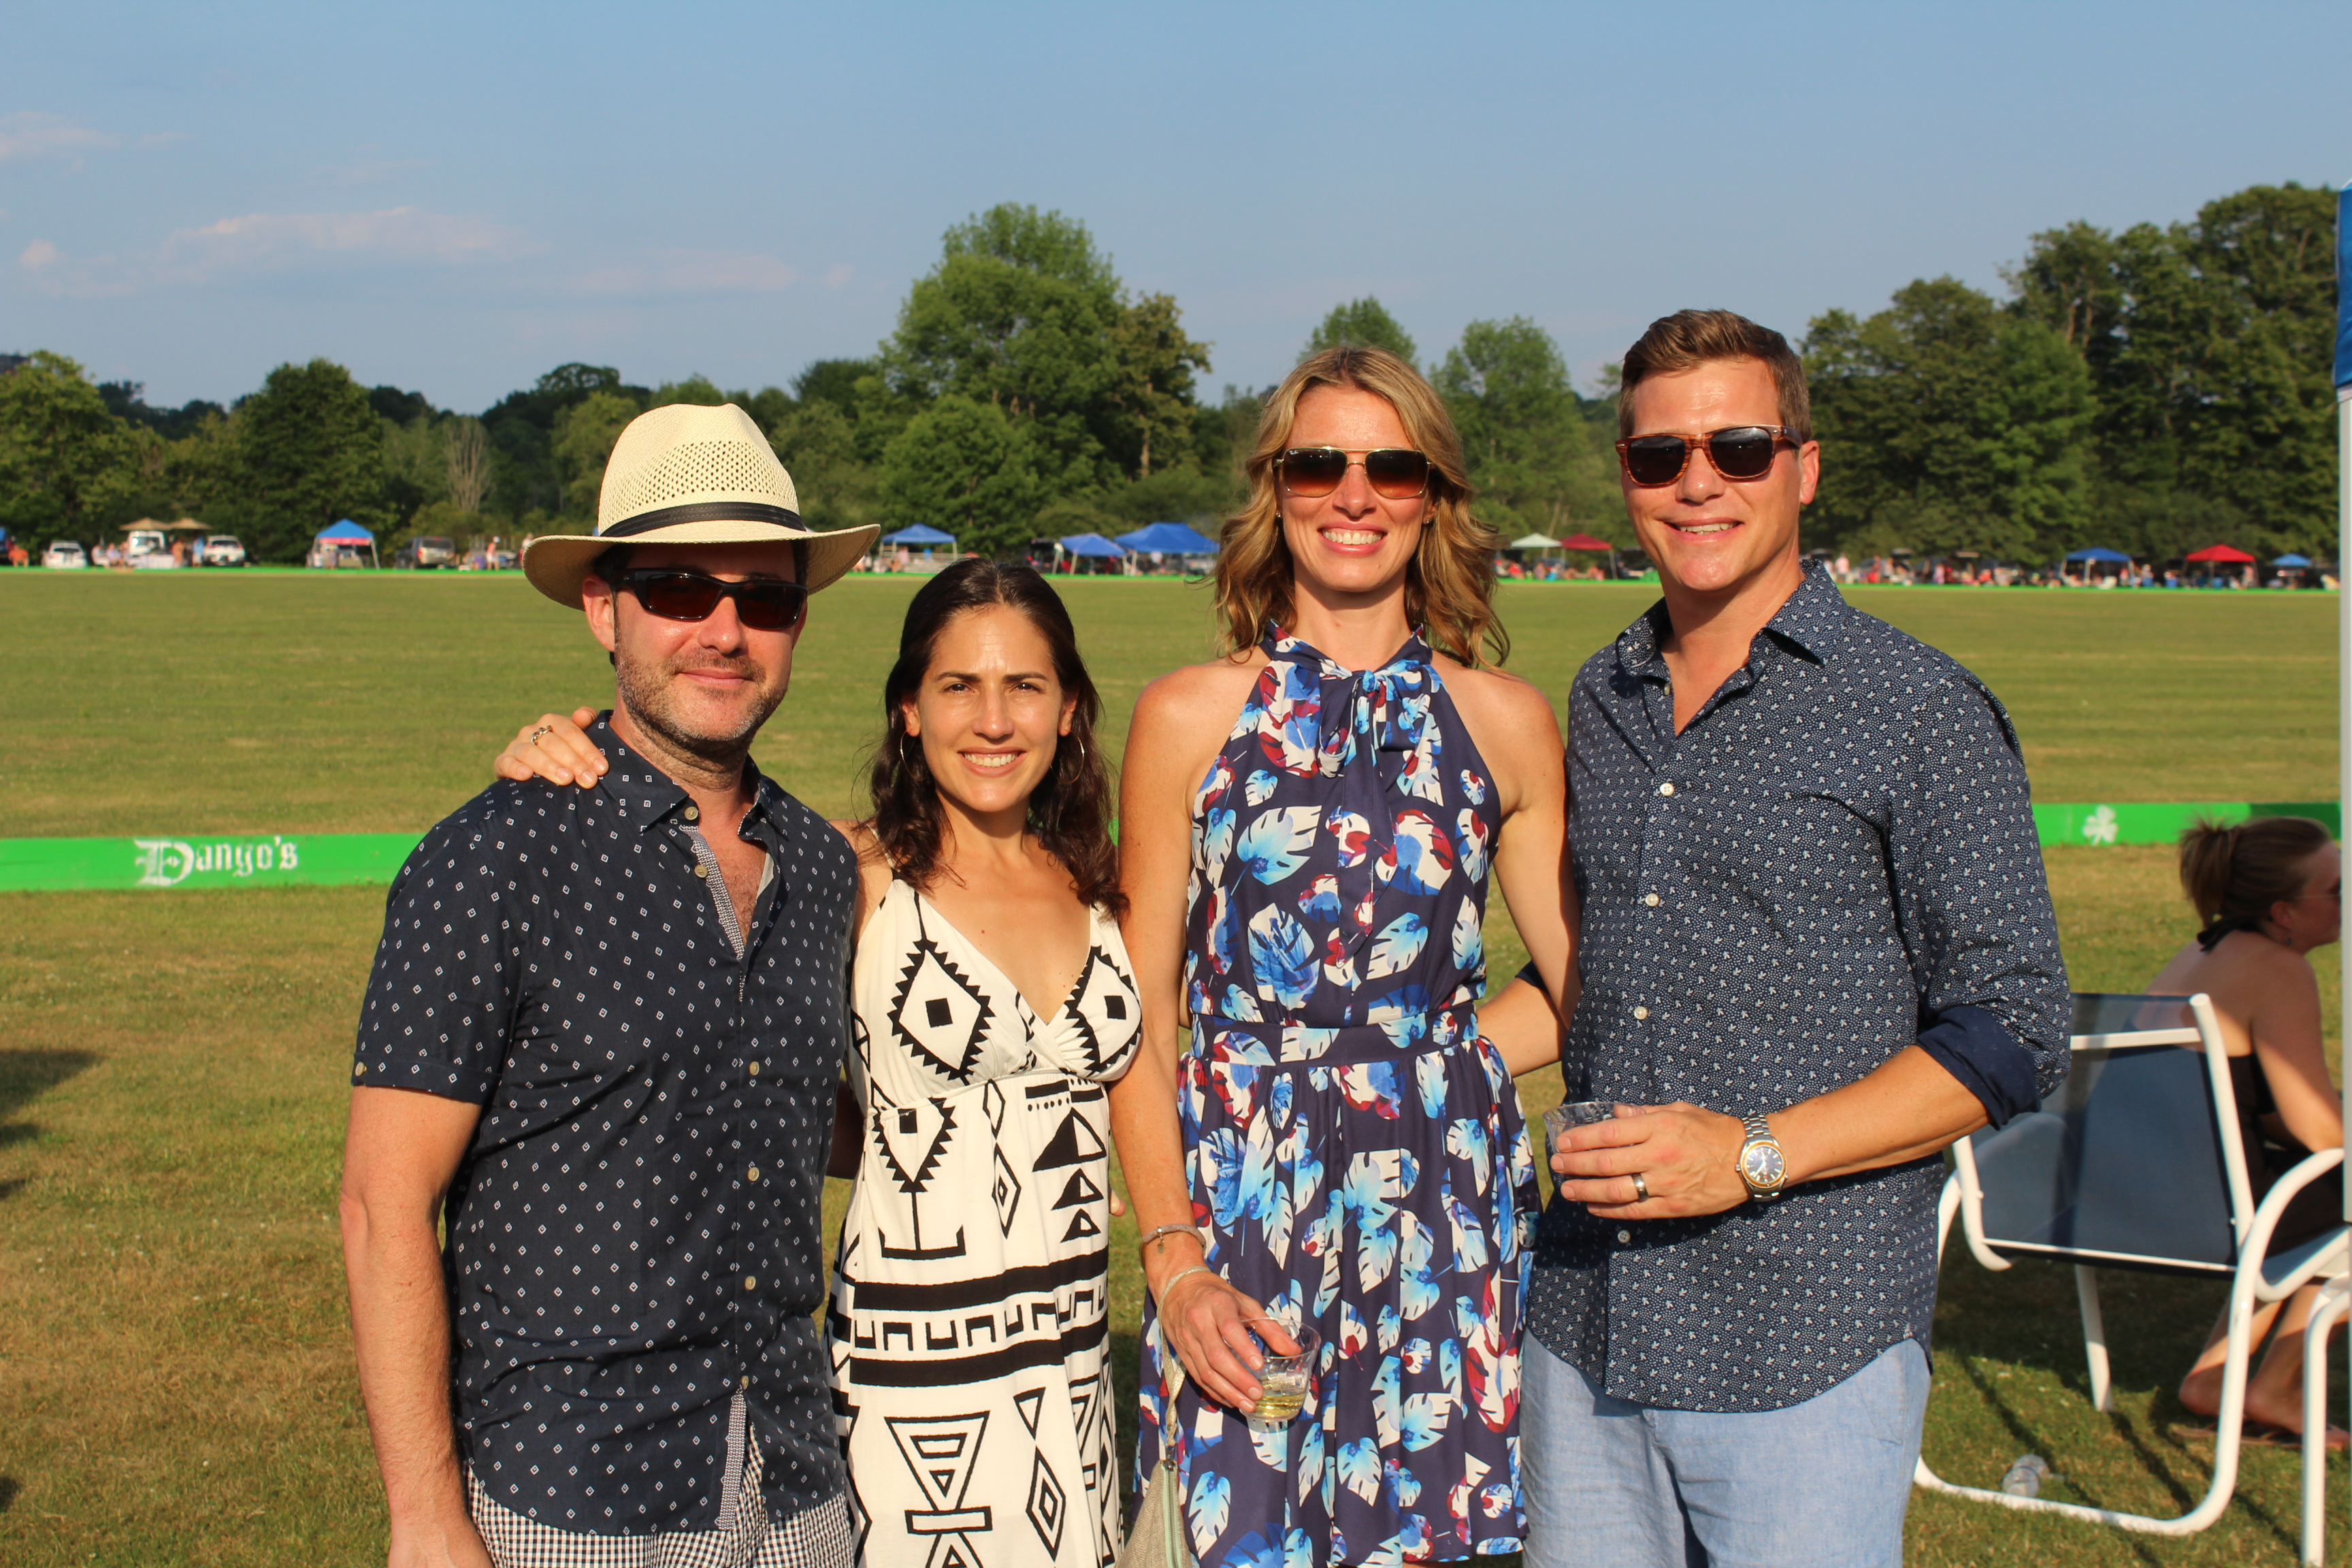 Four people smiling at the Saratoga Dog & Pony Show to benefit AIM Services, Inc.